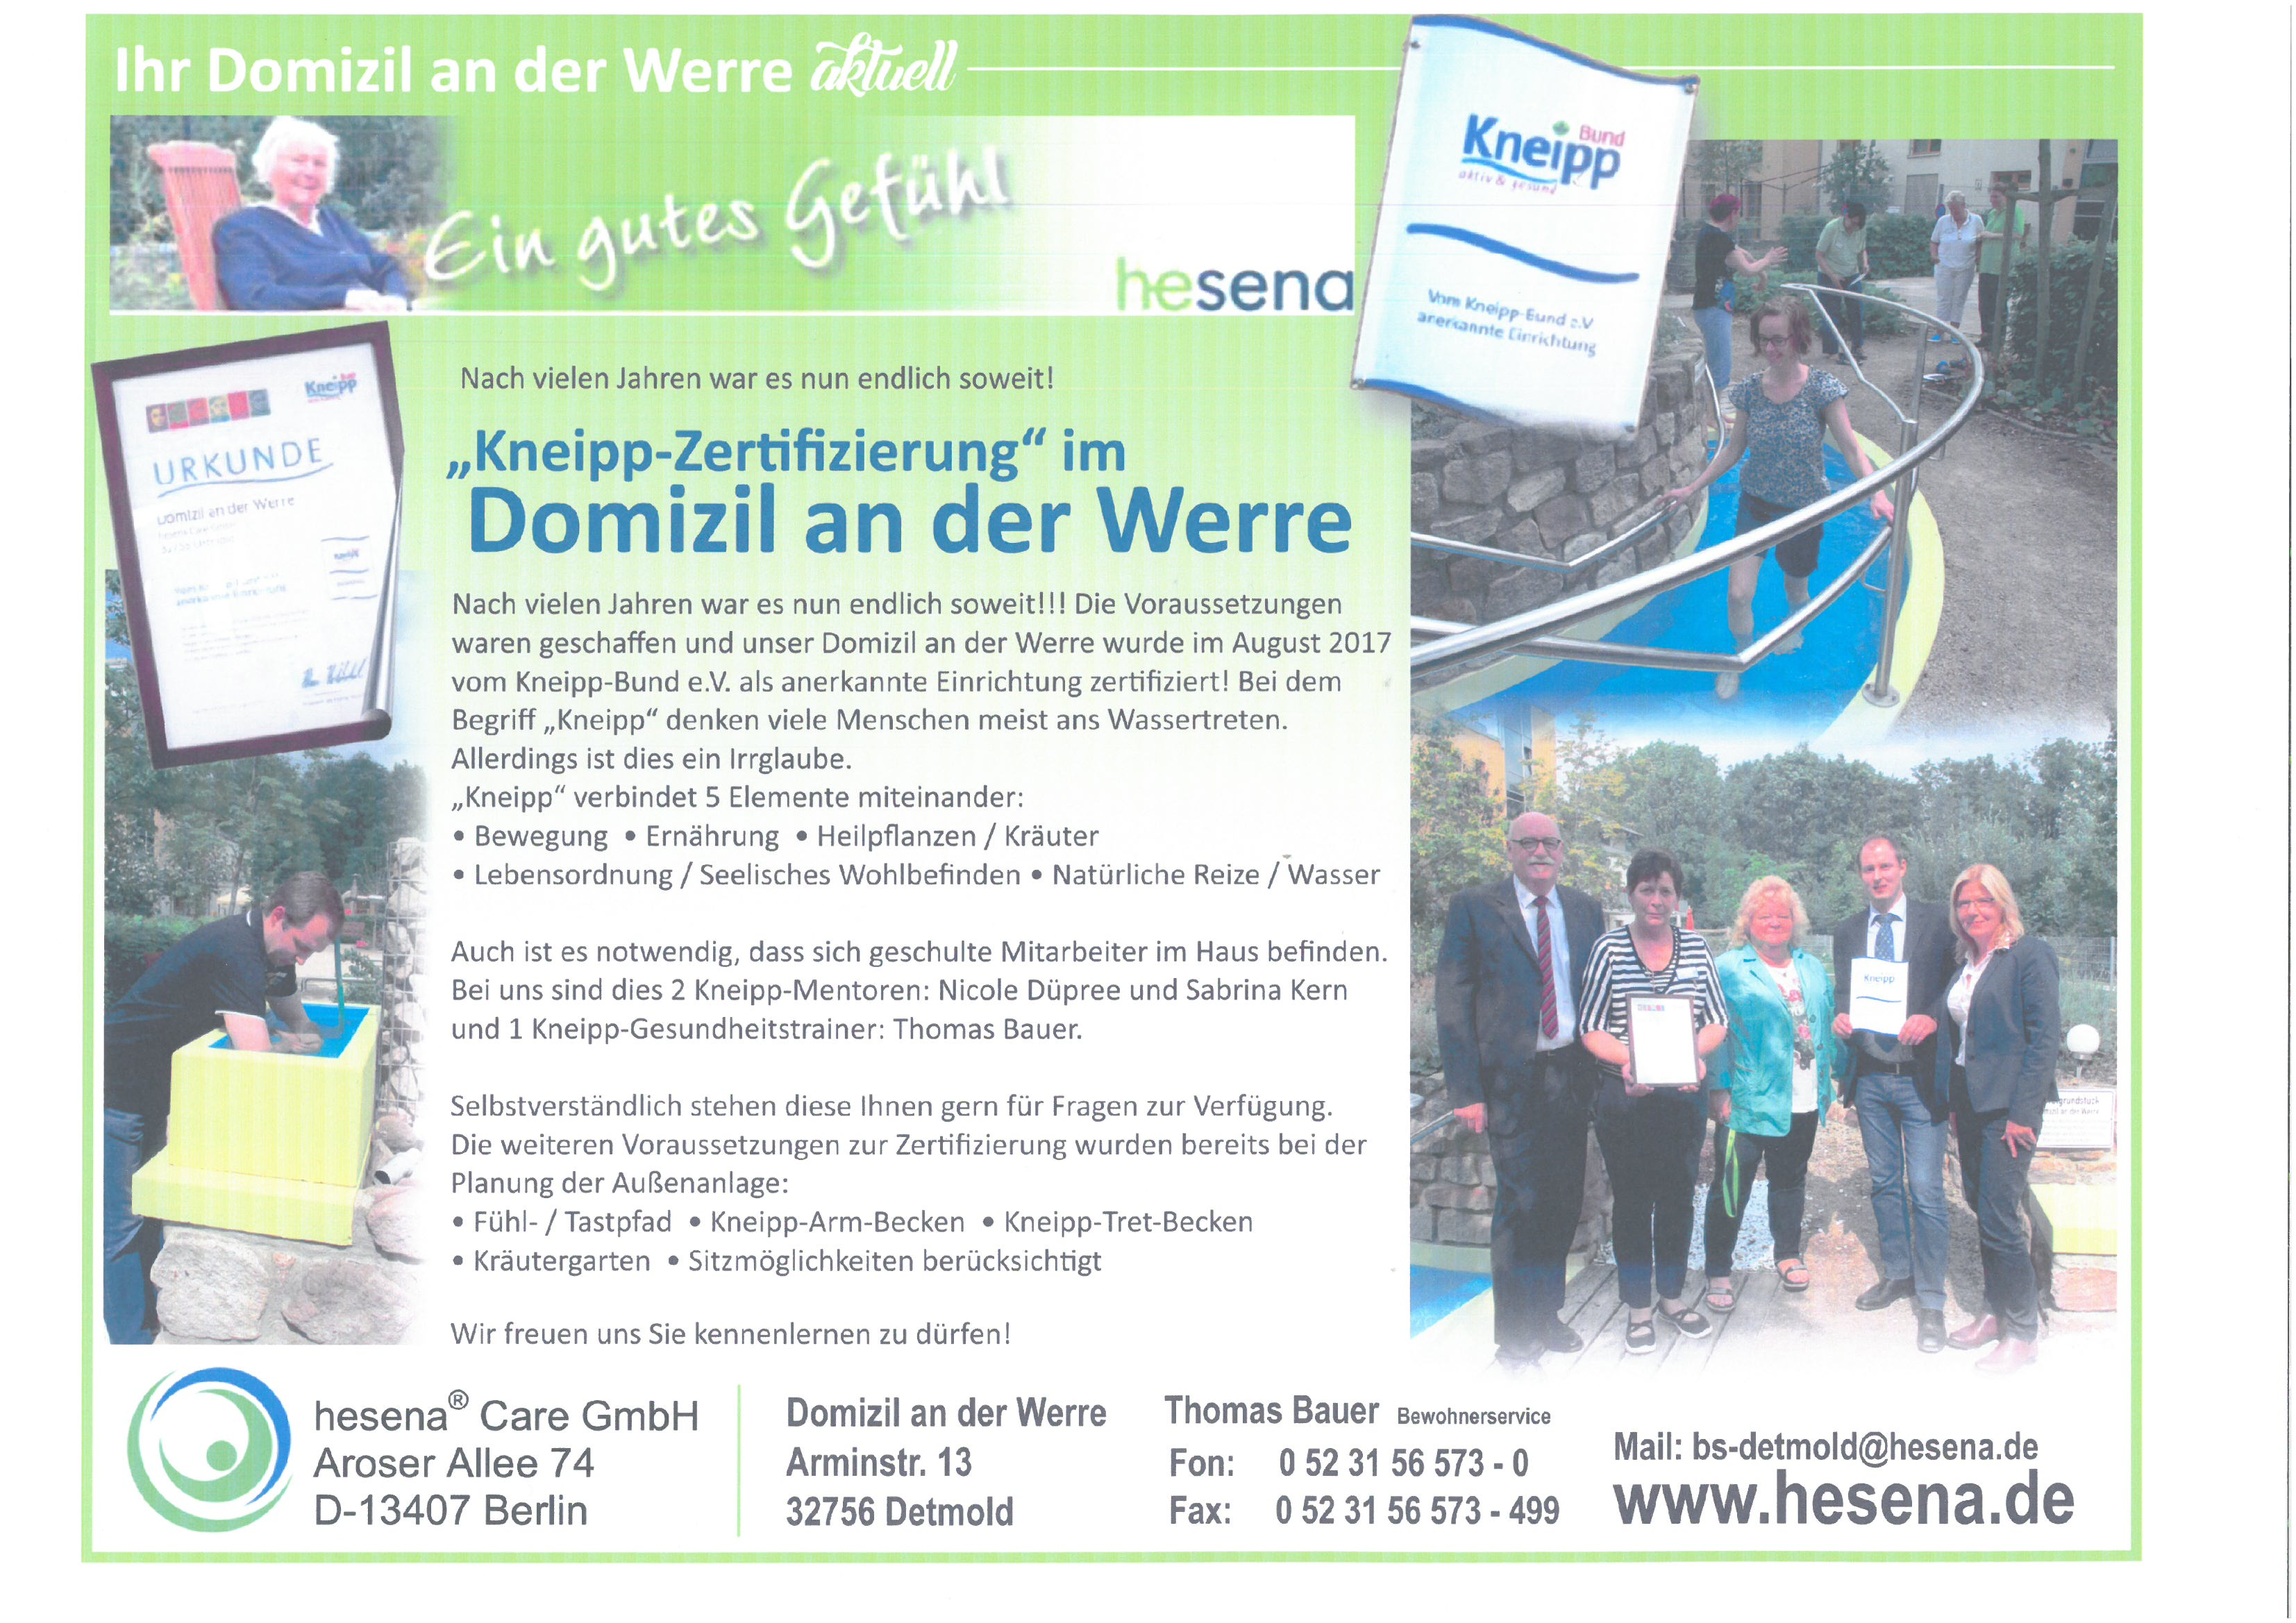 Domizil an der Werre in Detmold